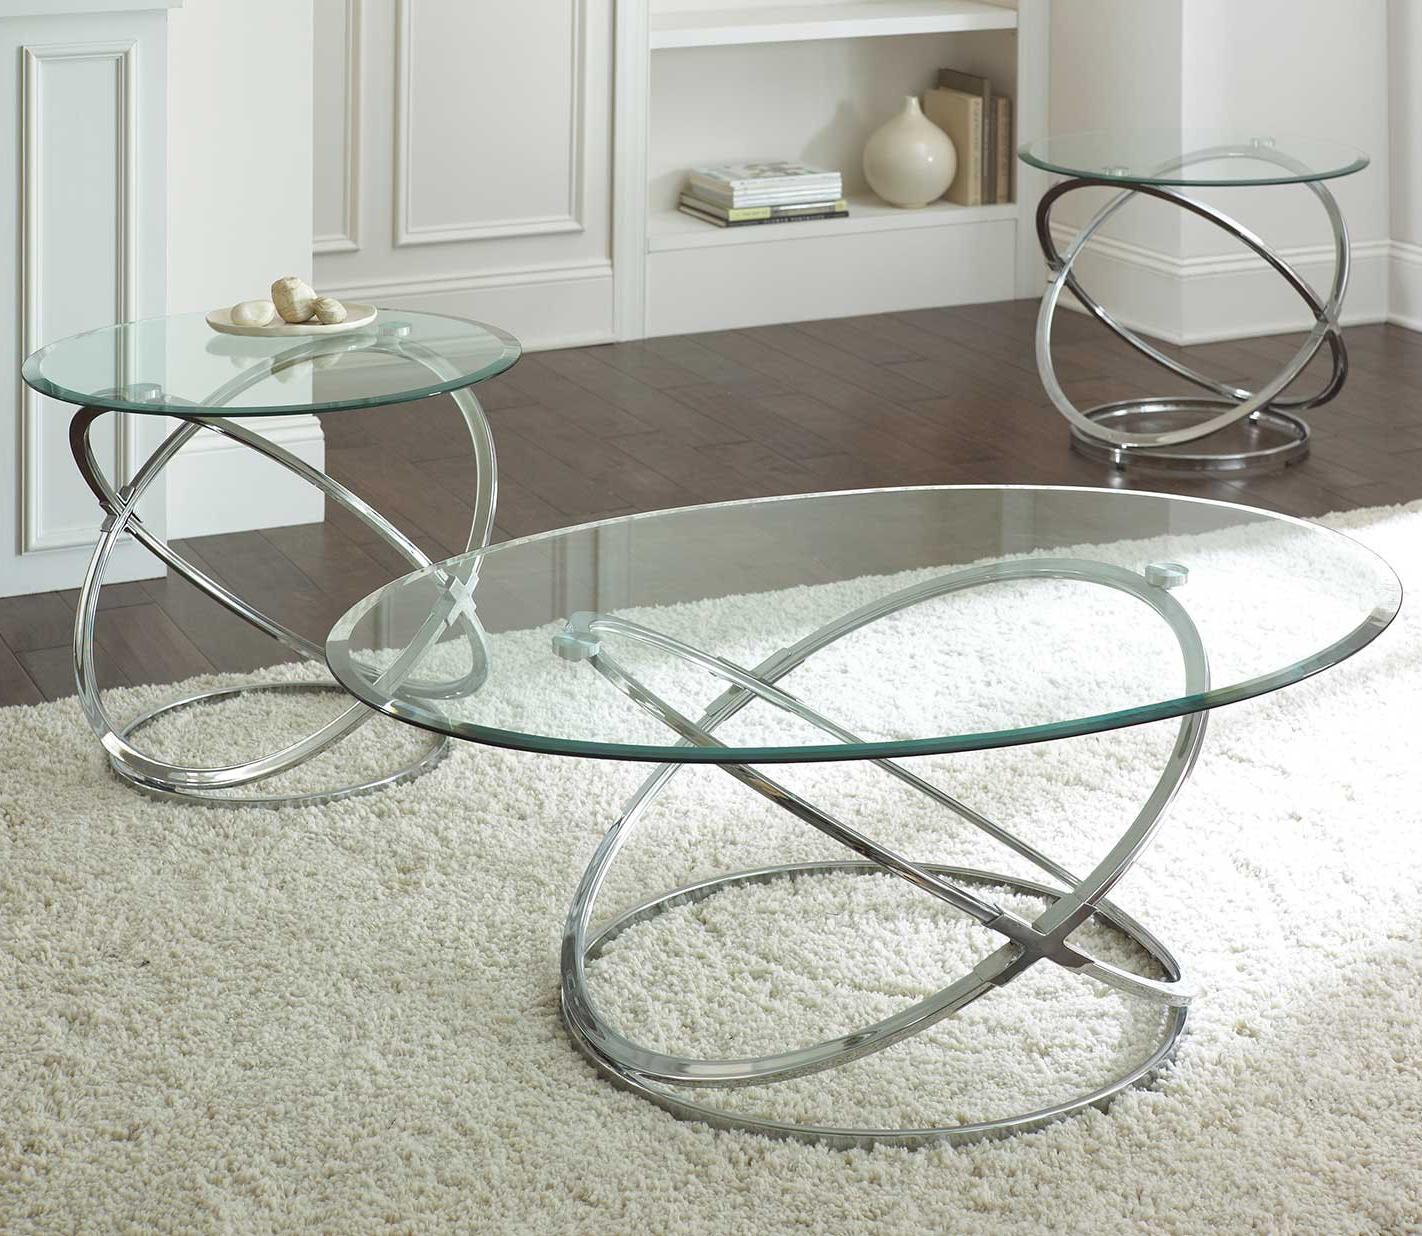 Orion 3 Piece Occasional Set by Steve Silver at Walker's Furniture